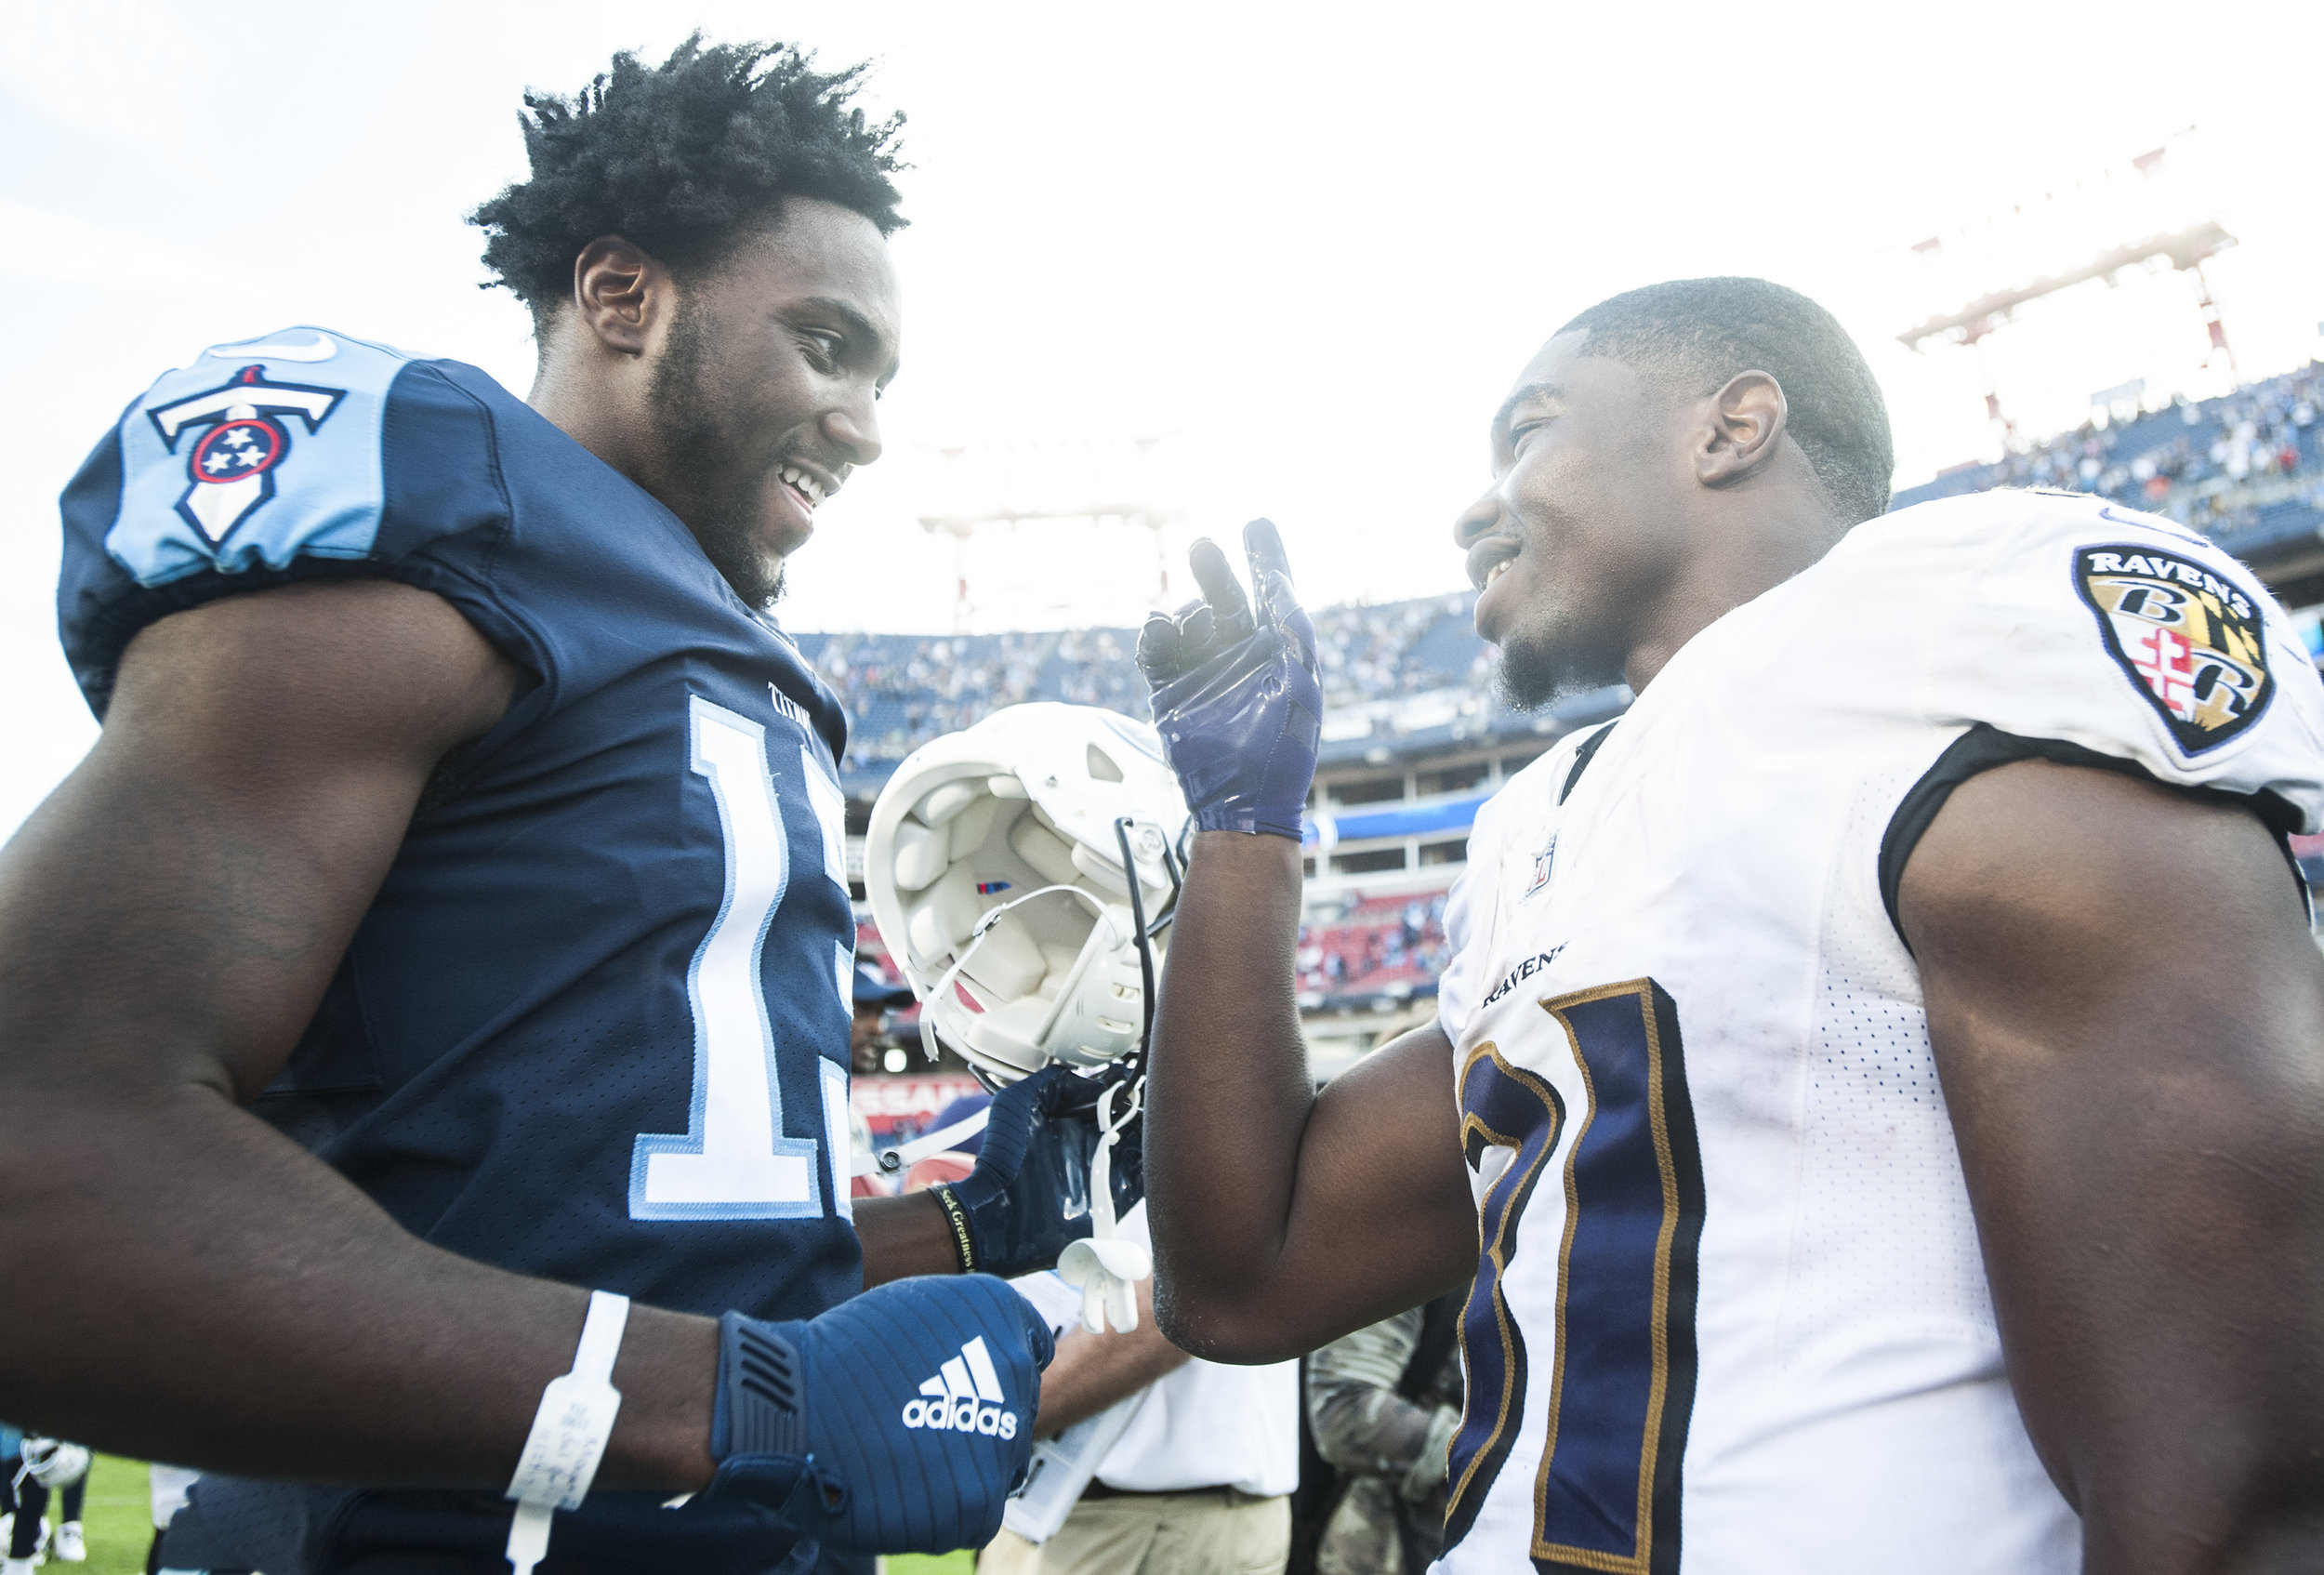 Tennessee Titans wide receiver Taywan Taylor (13) talks to Baltimore Ravens running back Bobby Rainey (31) after the Titans' 23-20 win over Baltimore on Sunday, Nov. 5, 2017, at Nissan Stadium. Rainey is the first Hilltopper since the program's transition to the FBS to make a career in the NFL.